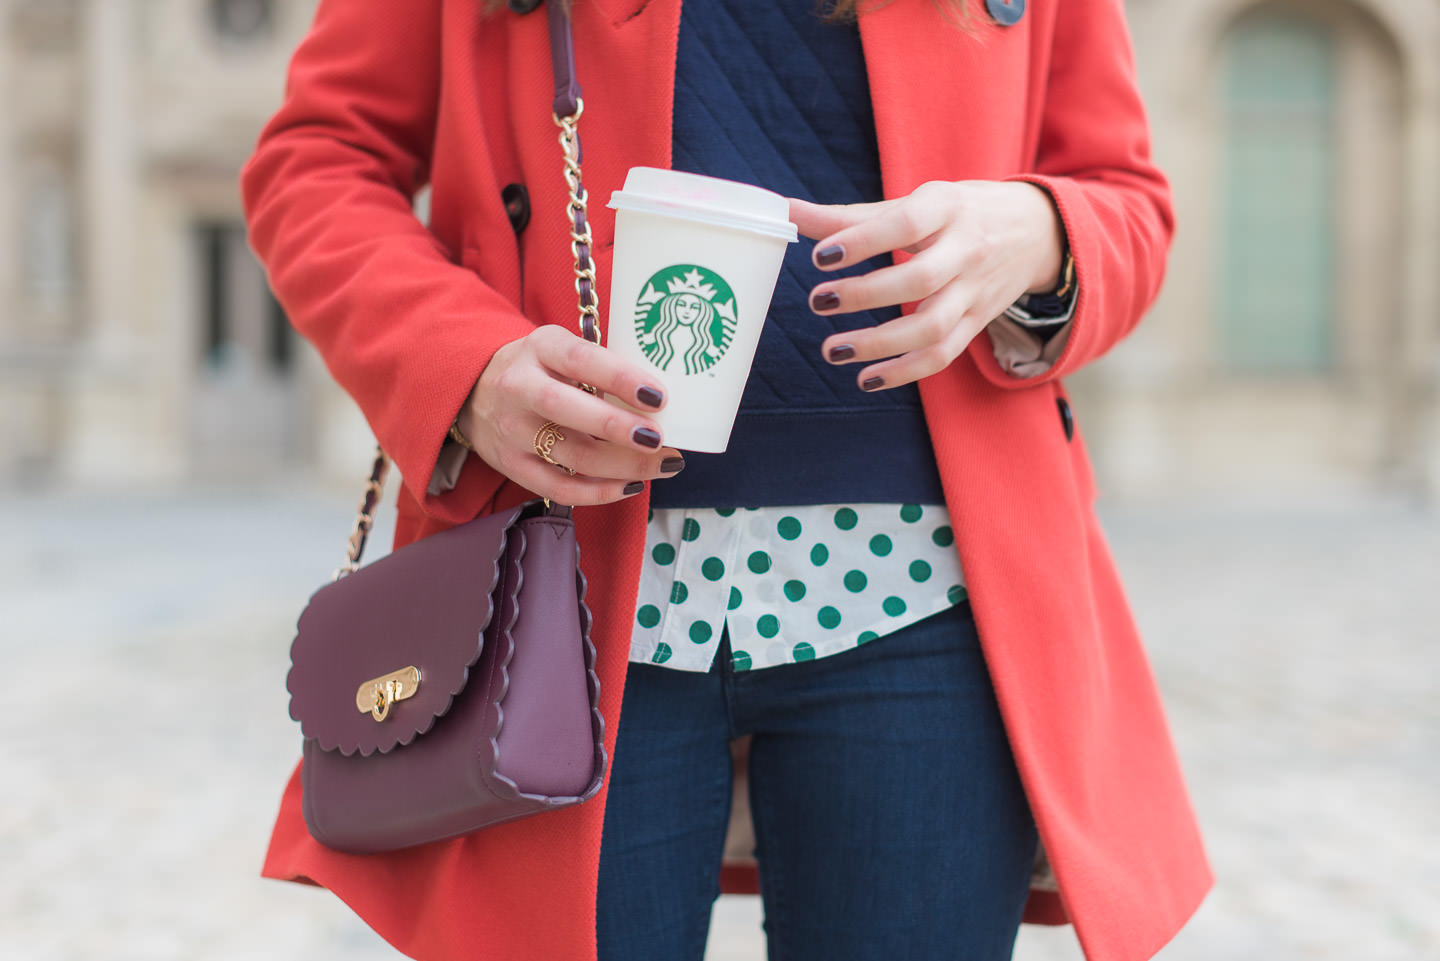 Blog-Mode-and-the-city-lifestyle-cinq-petites-choses-146-pumpkin-spice